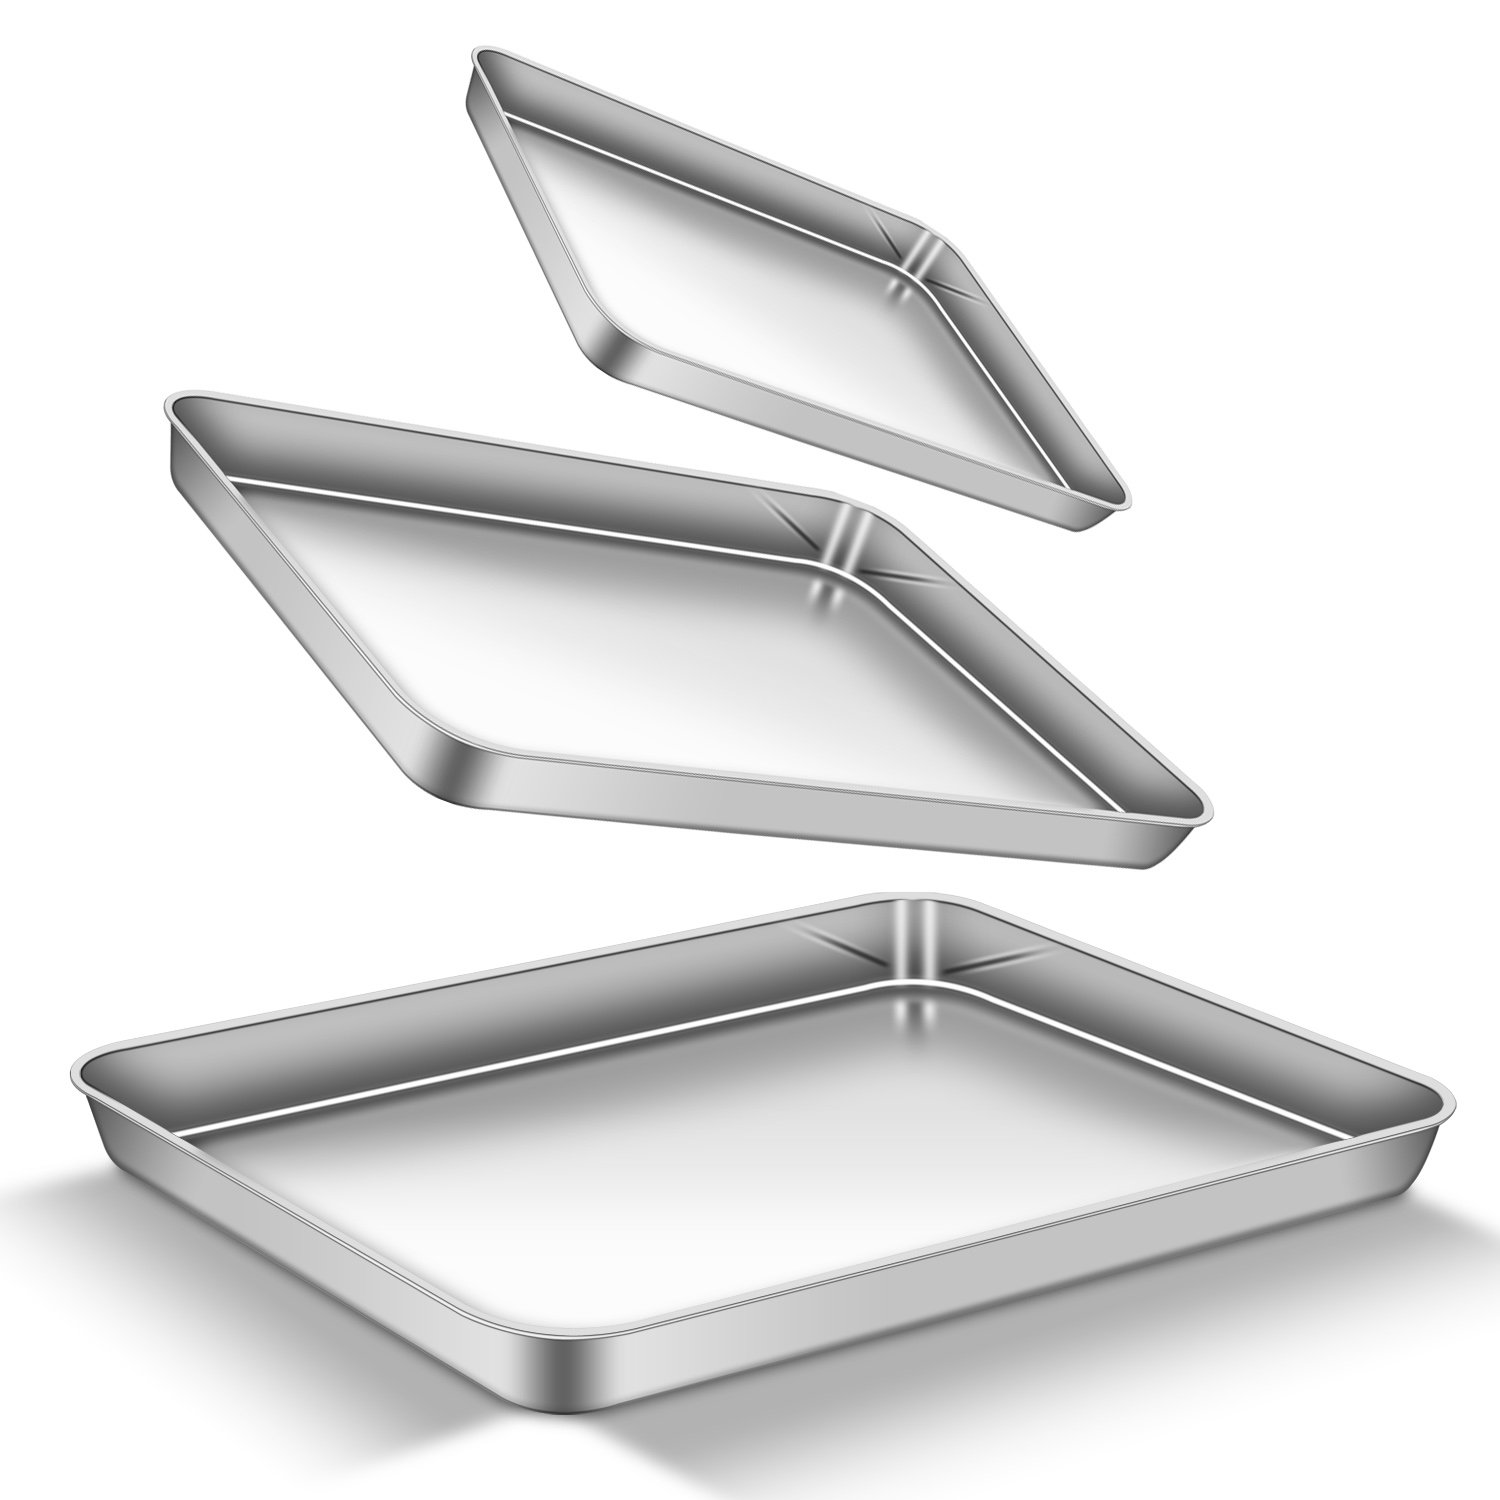 Baking Sheet Set, bdeals Premium Stainless Steel Cookie Sheet Toaster Oven Trays Biscuits Brownie Baking Pans Rectangle Size, Non Toxic & Stick, Mirror Finish & Easy Clean & Dishwasher Safe, Set of 3 by BDEALS